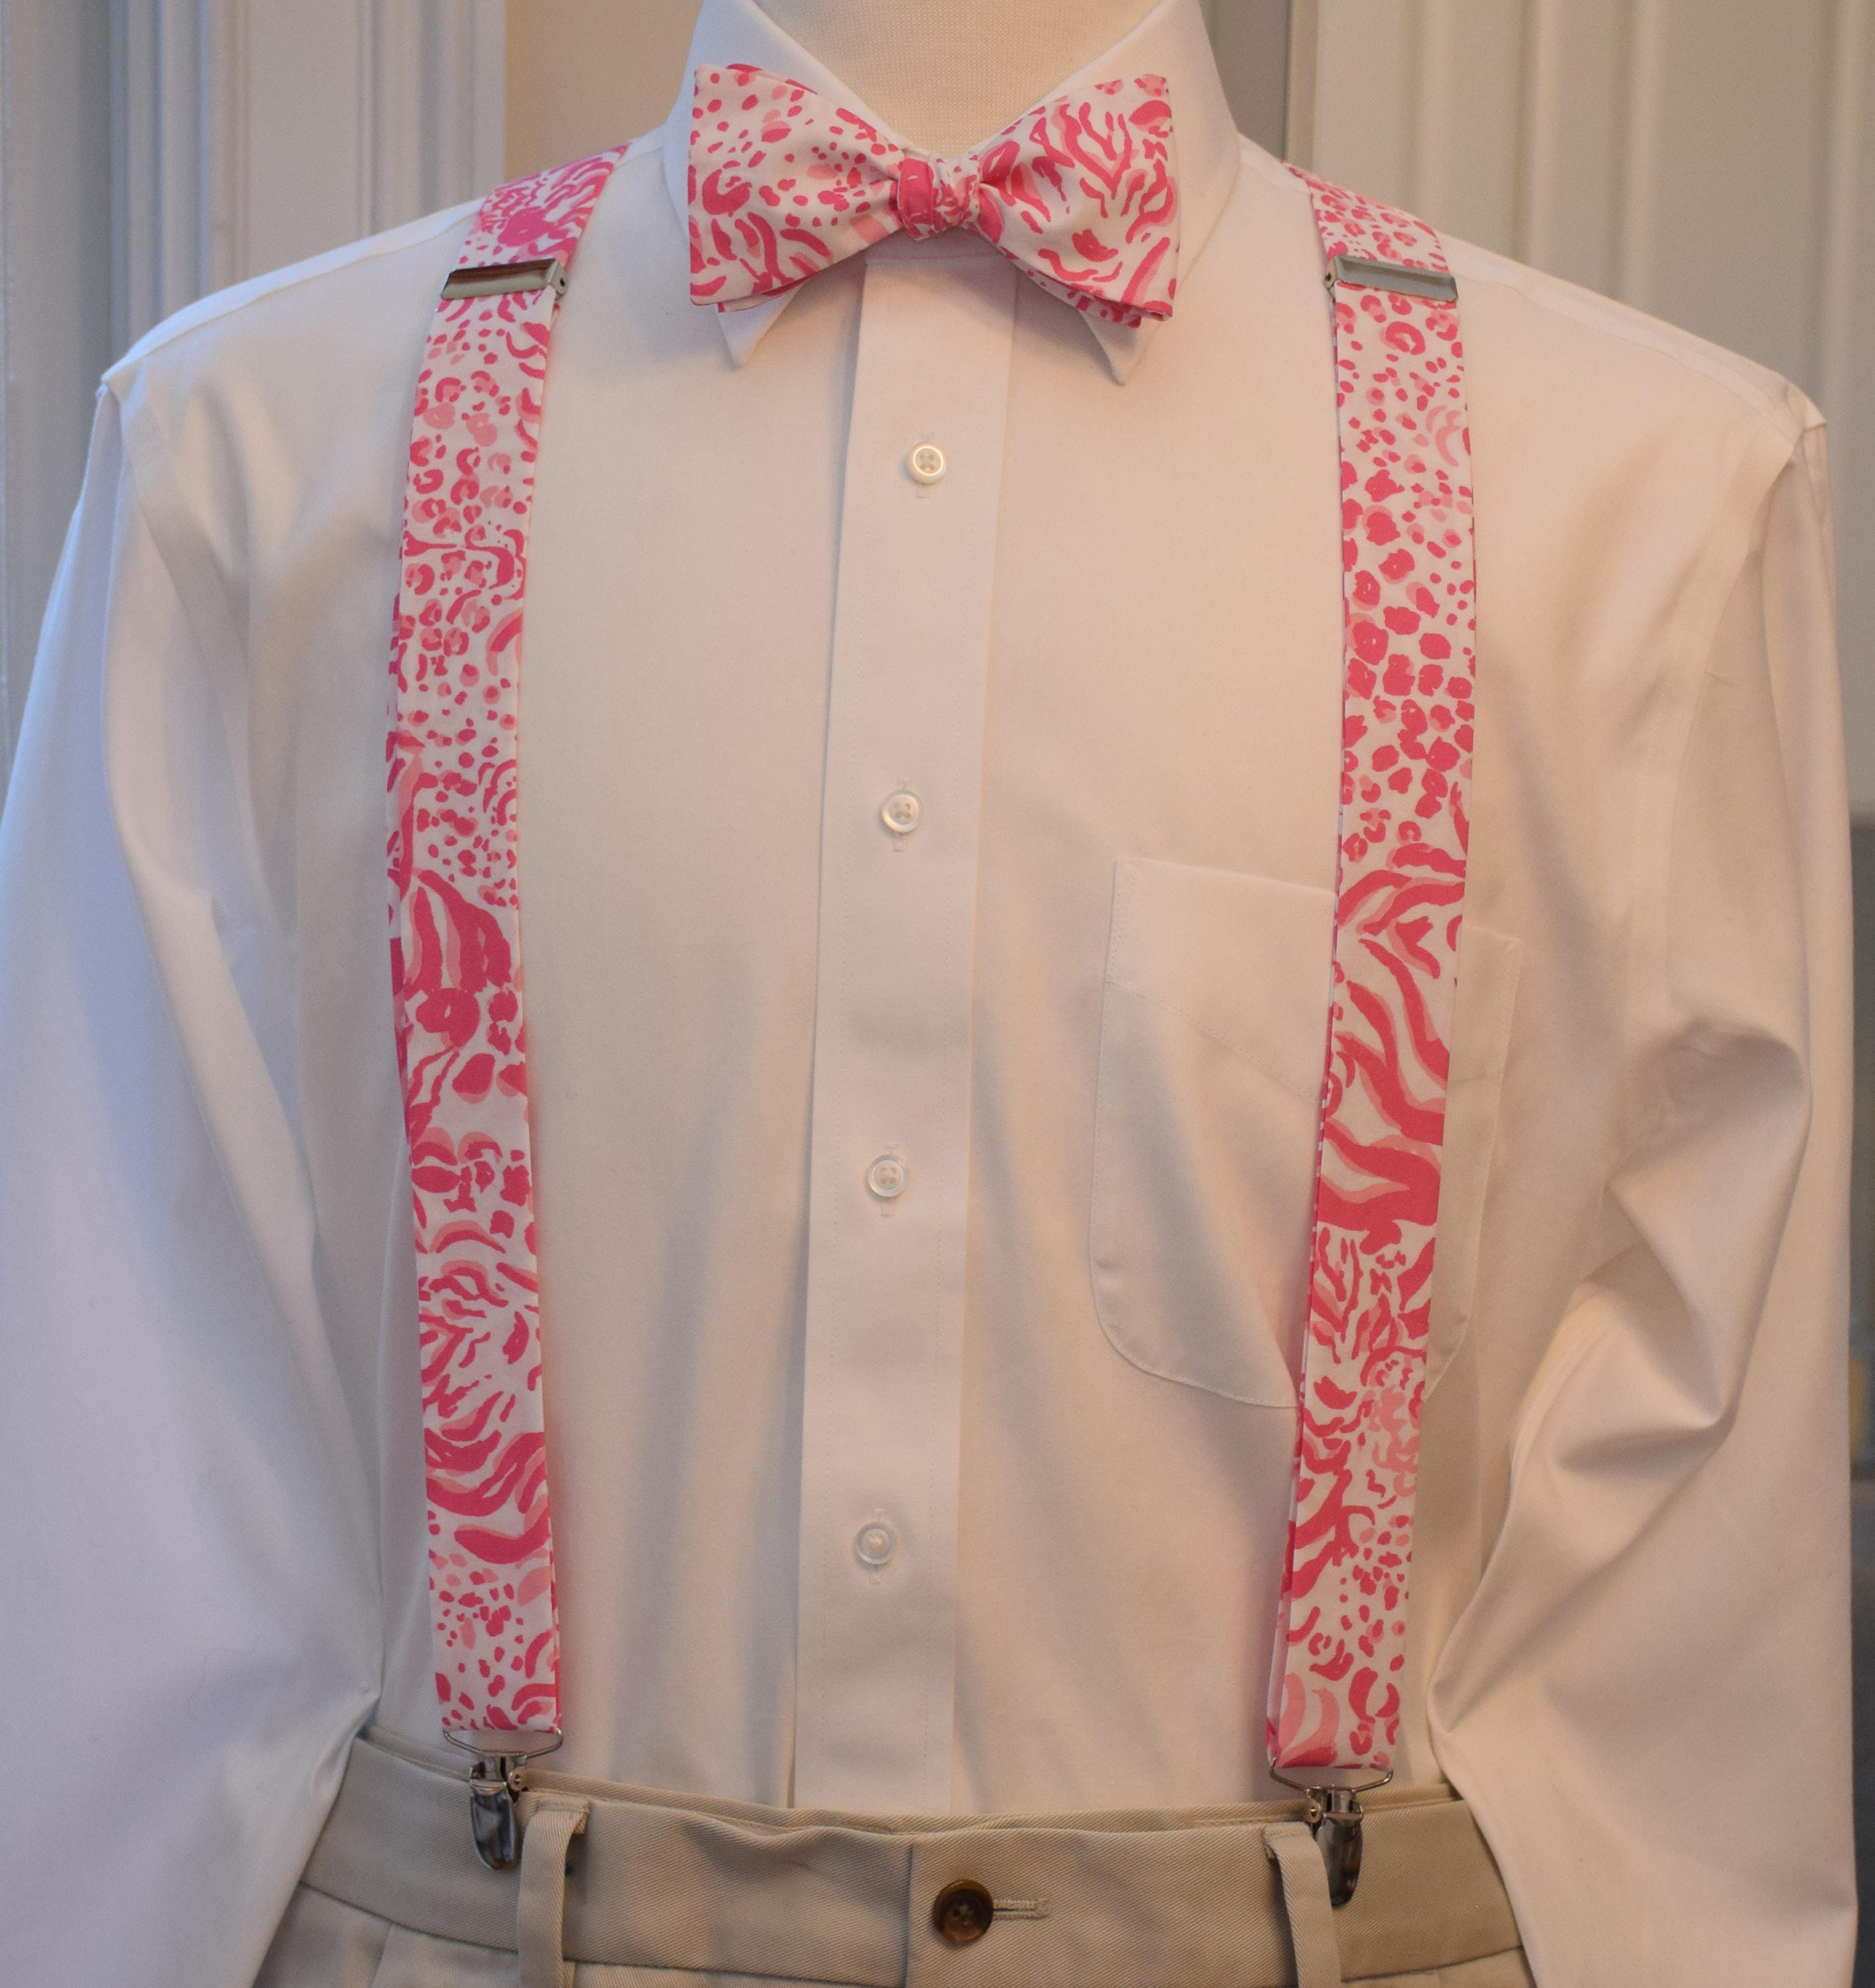 Men S Suspenders Bow Tie Set Lilly Pink White Get Spotted Clip